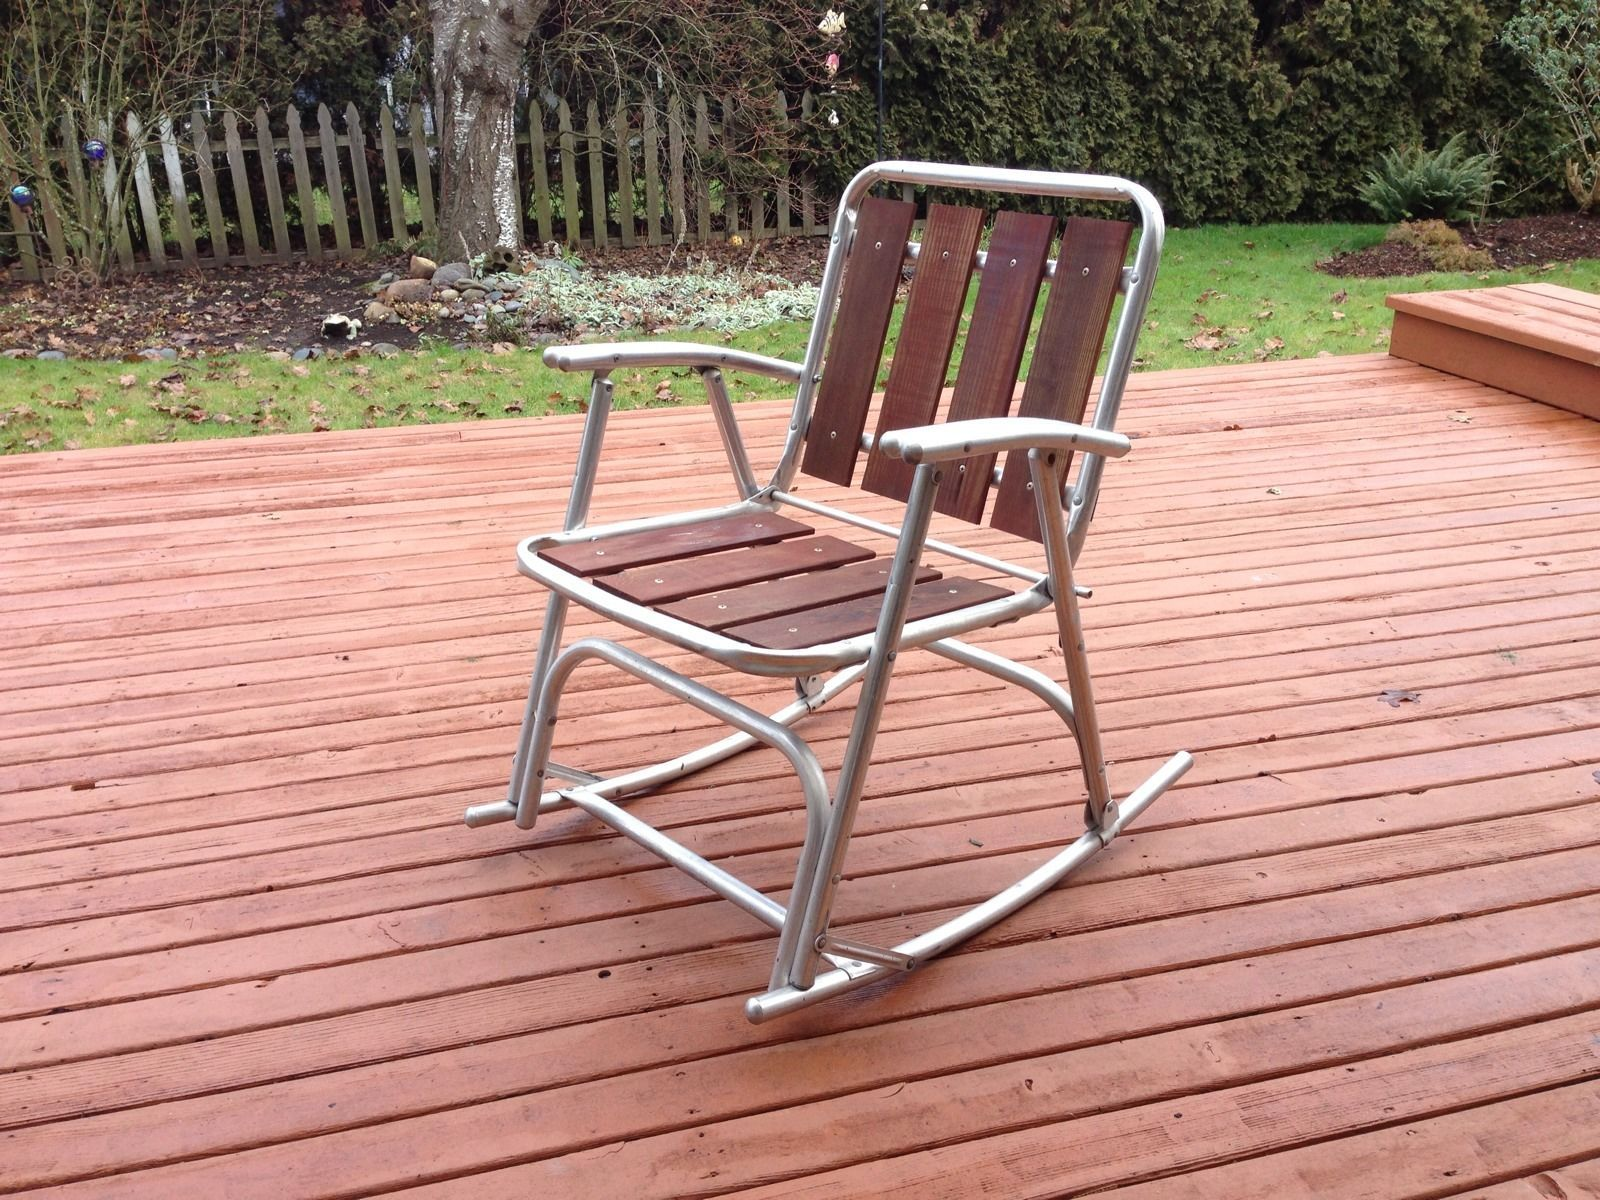 Aluminum Lawn Chairs 1 Vtg Redwood Aluminum Outdoor Patio Porch Lawn Rocking